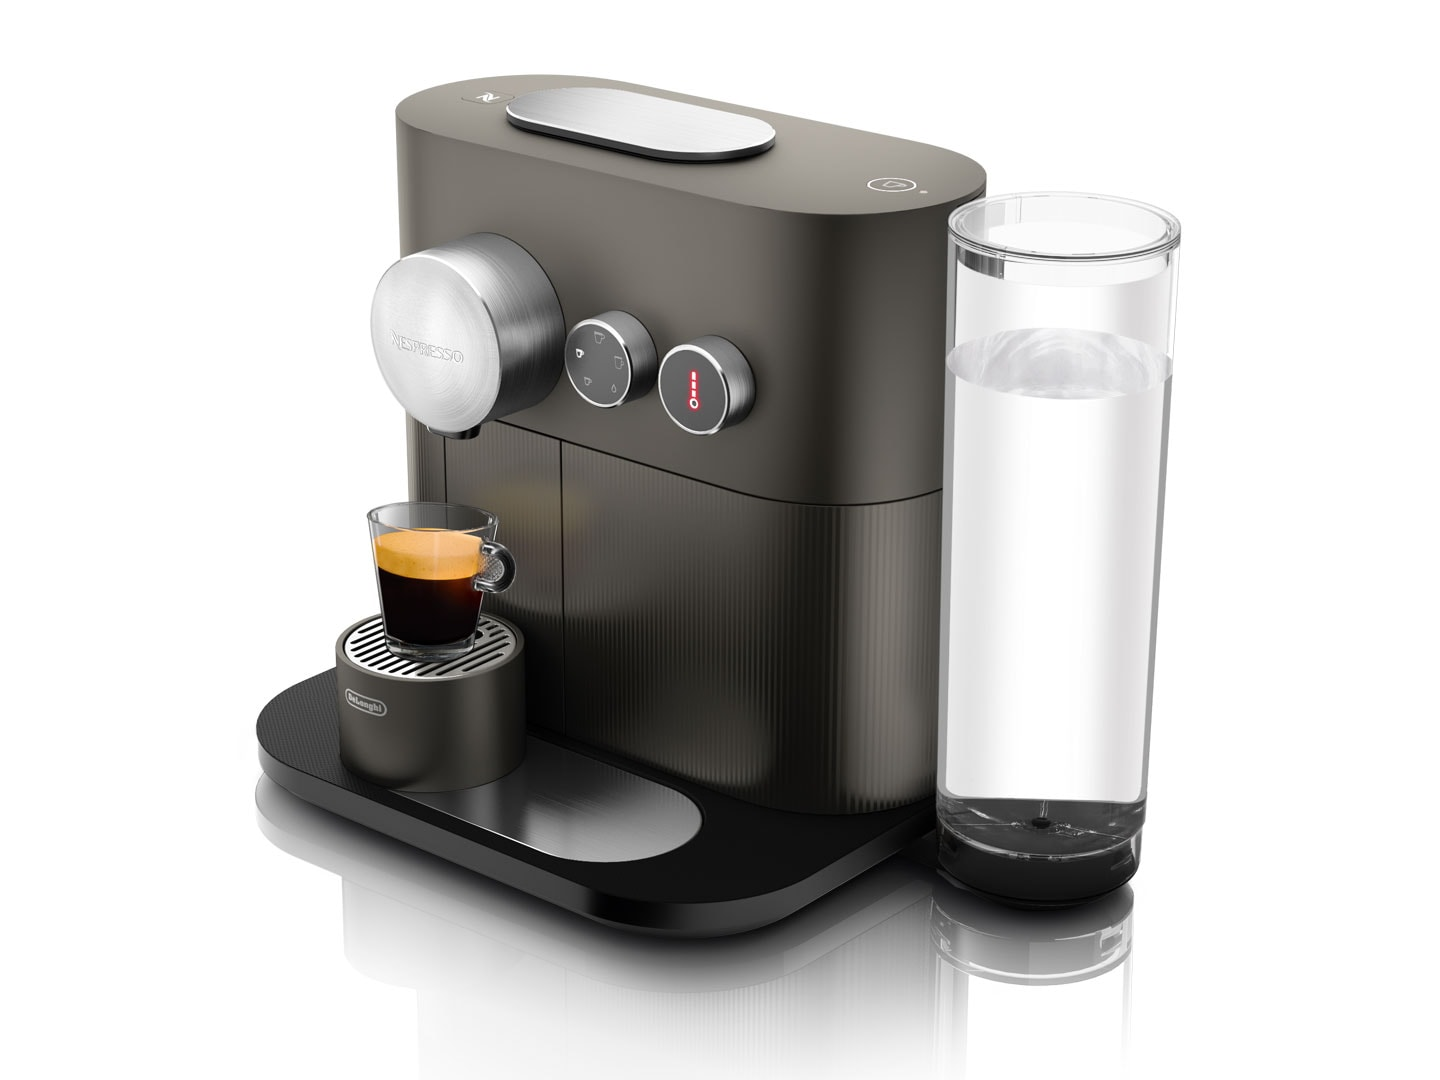 http://www.delonghi.com/Global/Products/Images/Coffee-Makers/Nespresso-System/En%20350.G/sx-350.jpg